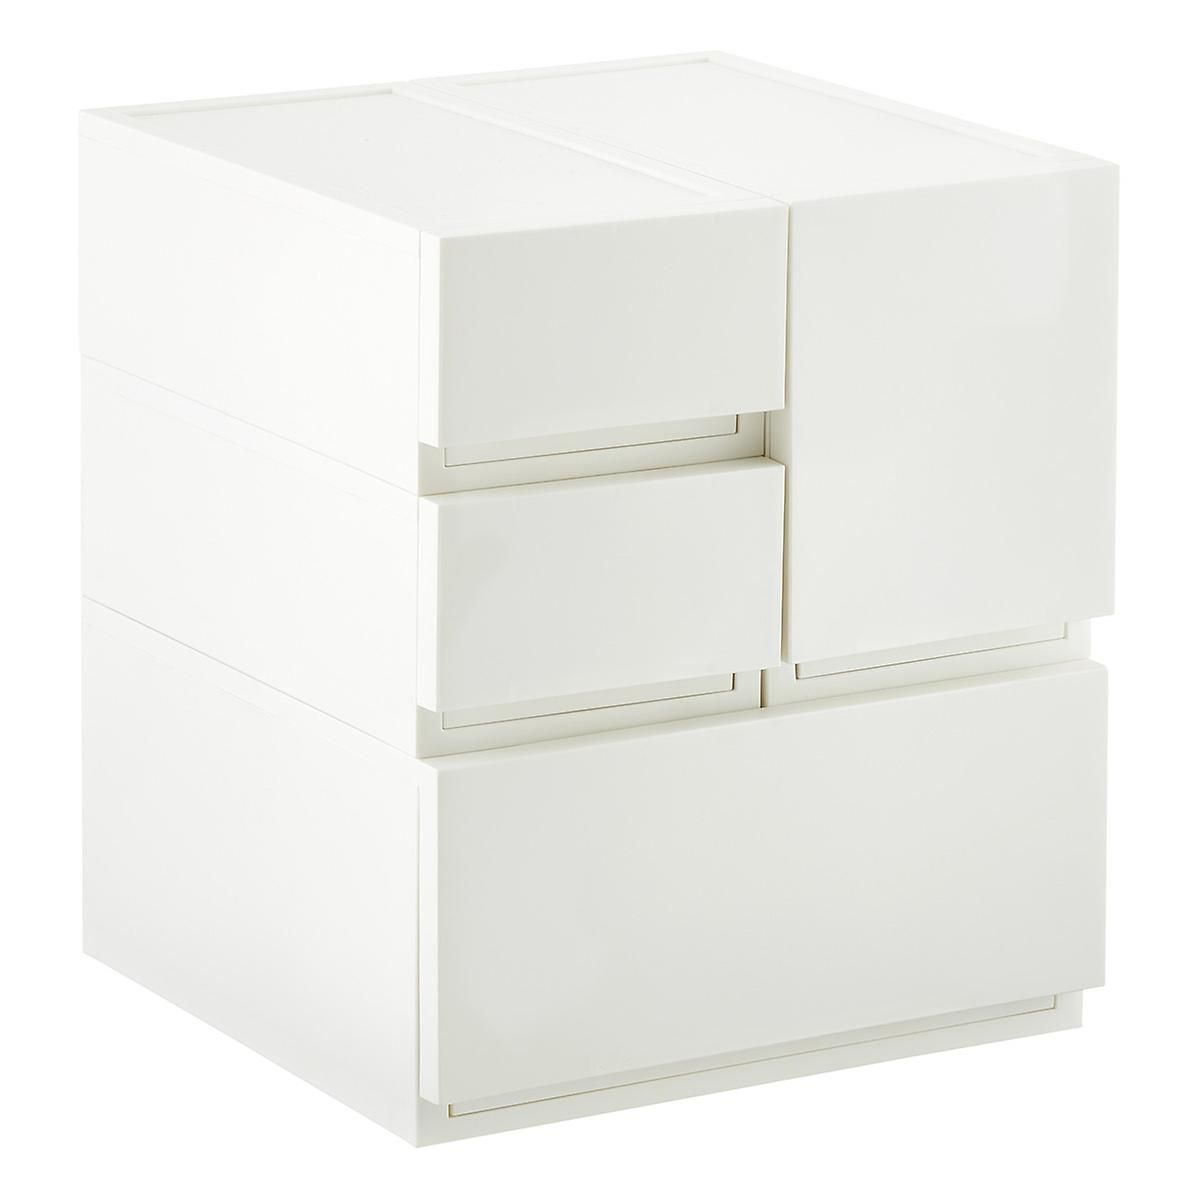 Merveilleux White Opaque Modular Stacking Drawers | The Container Store